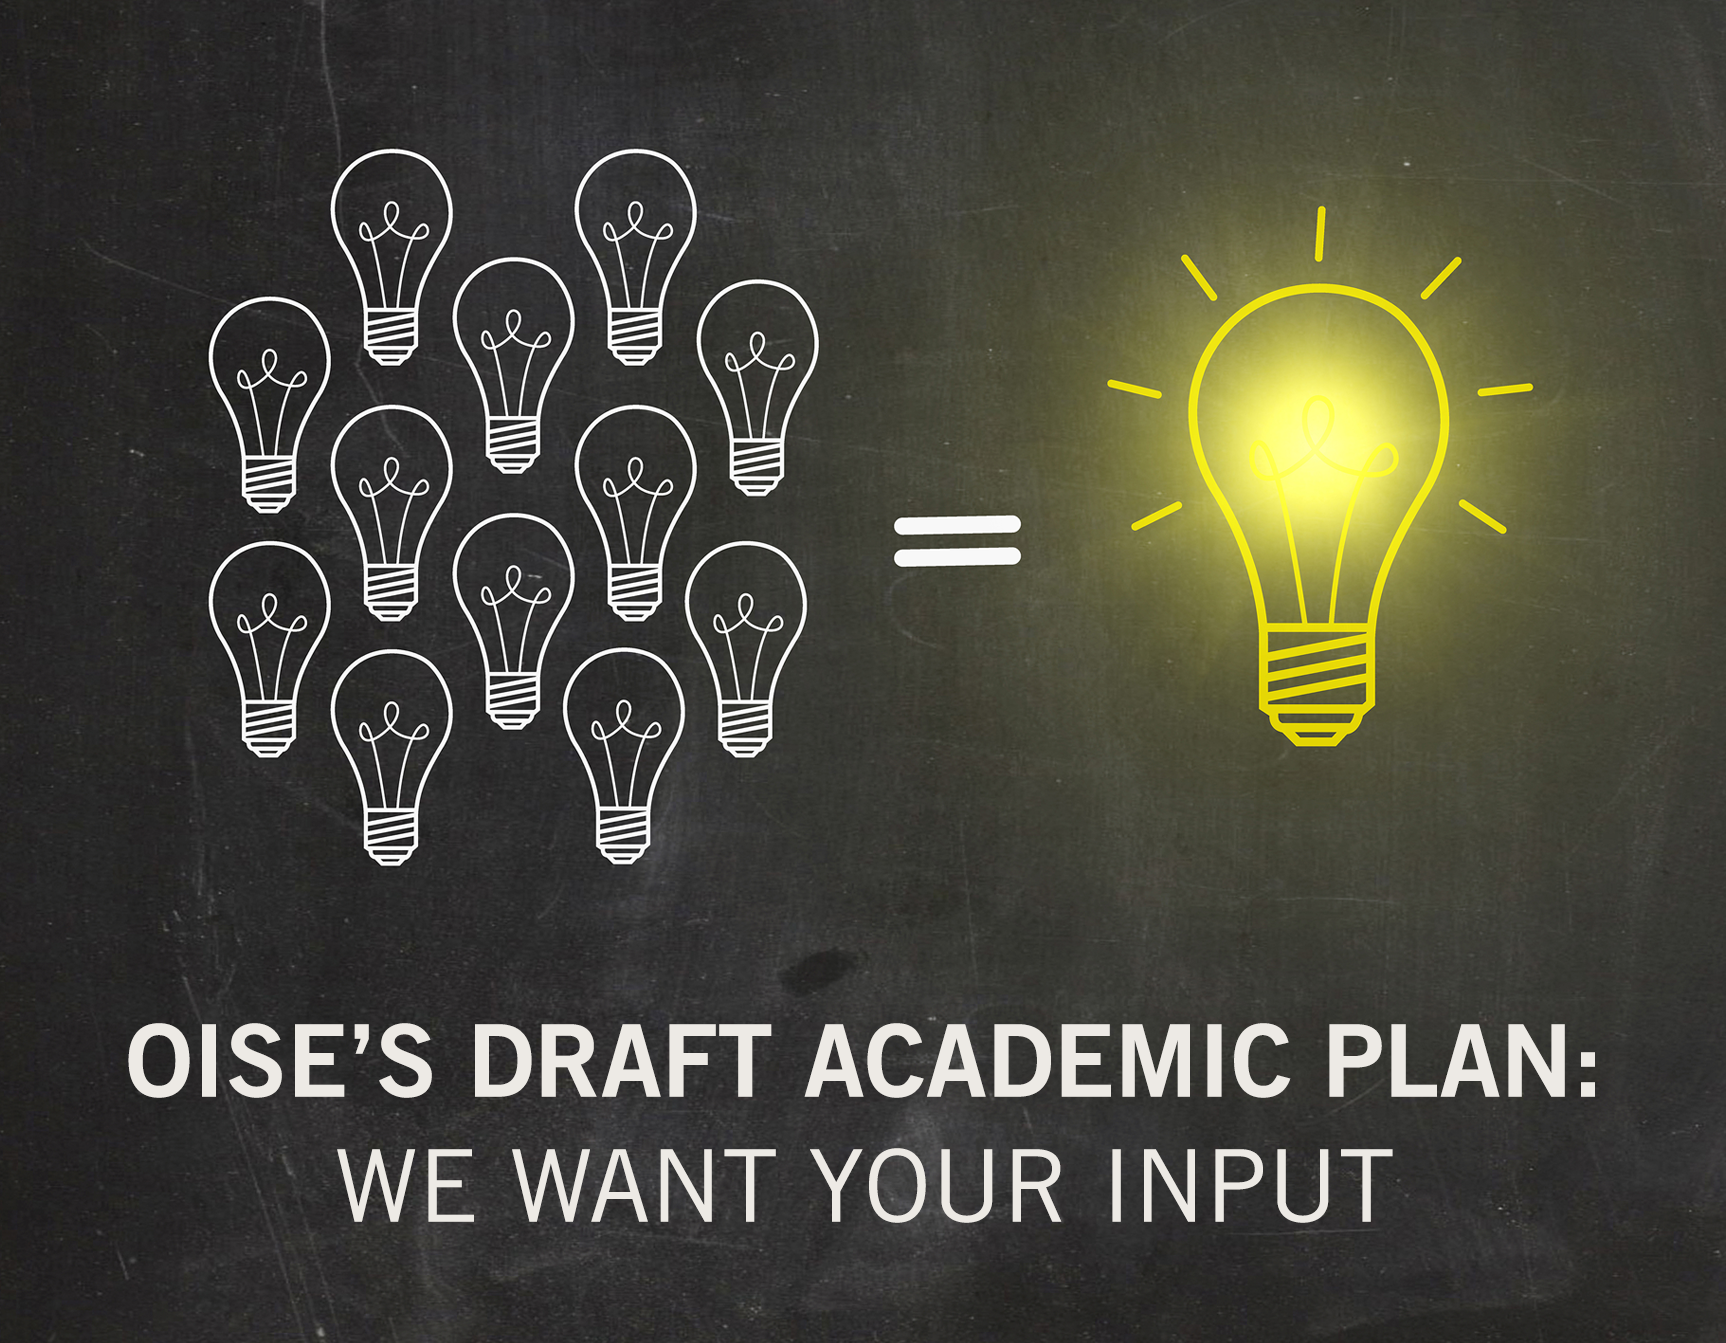 Give us input on OISE's draft academic plan